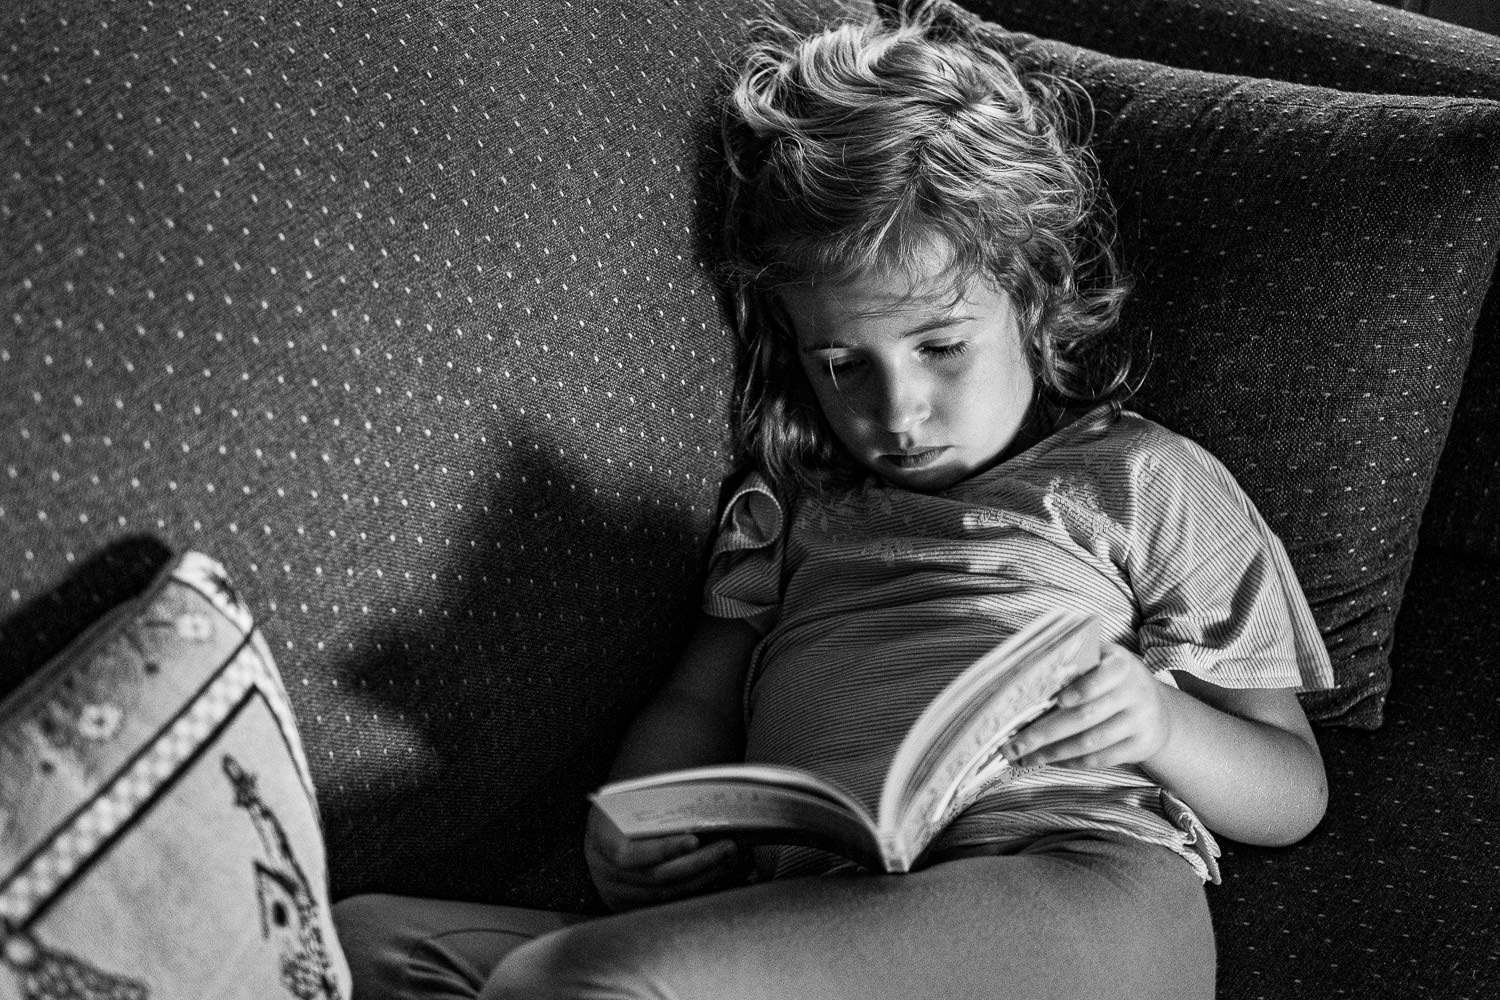 A little girl reads a book on a couch.